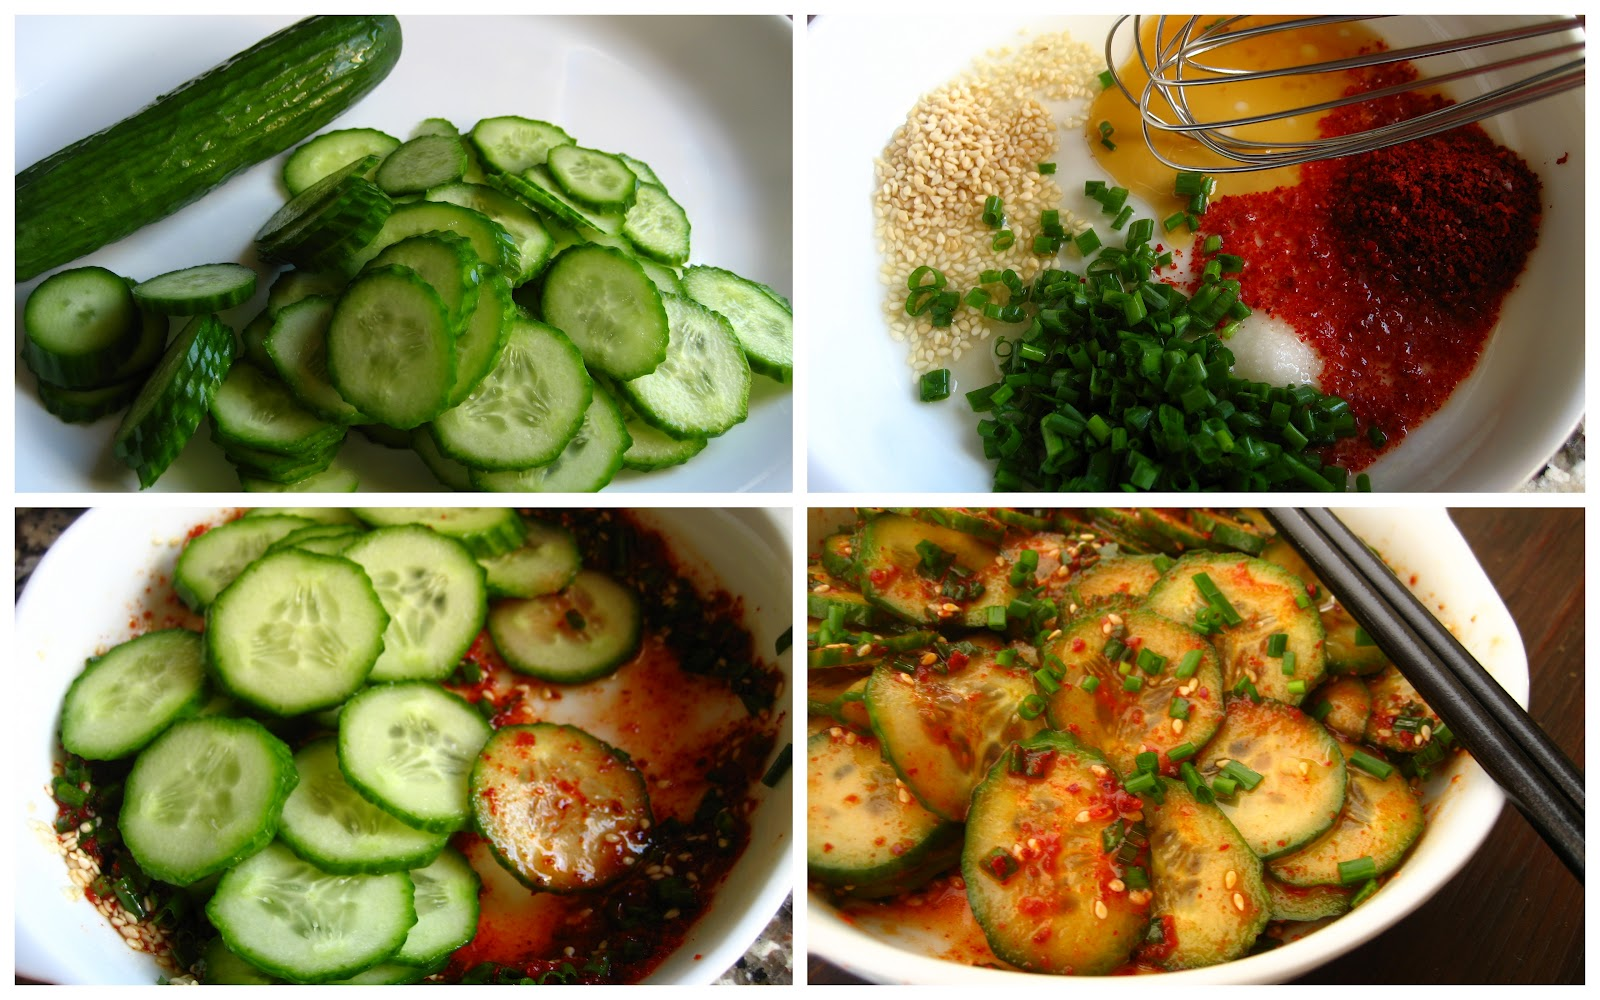 ... Cooking In Montana: Spicy Korean Red Pepper (Gochugaru) Cucumber Salad